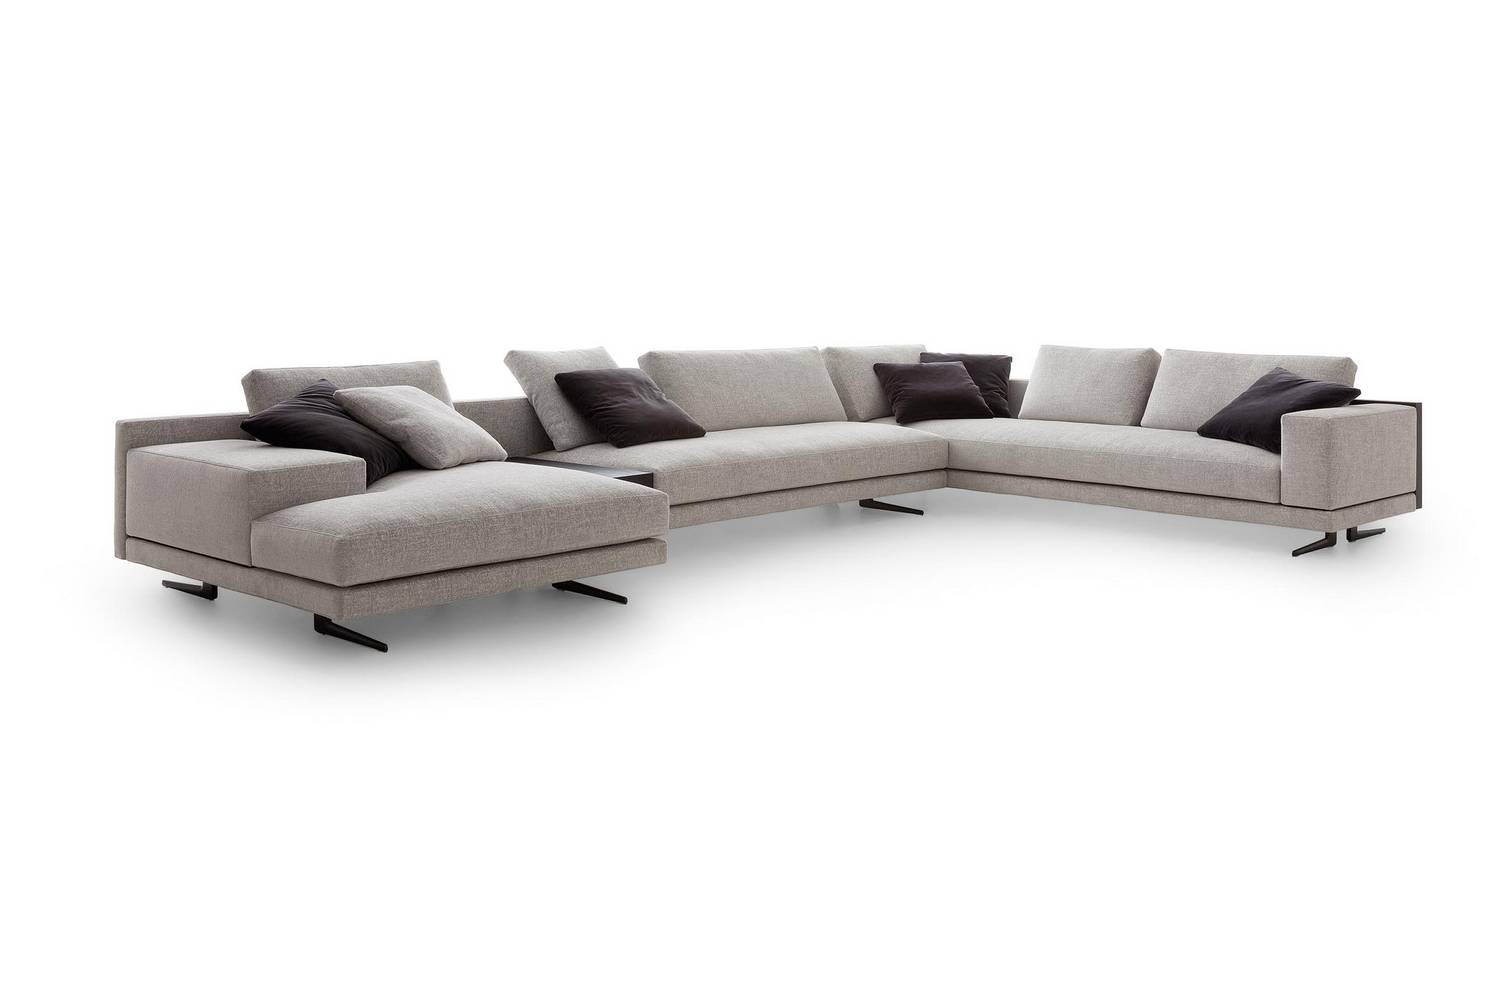 Mondrian Sofa by J. M. Massaud for Poliform